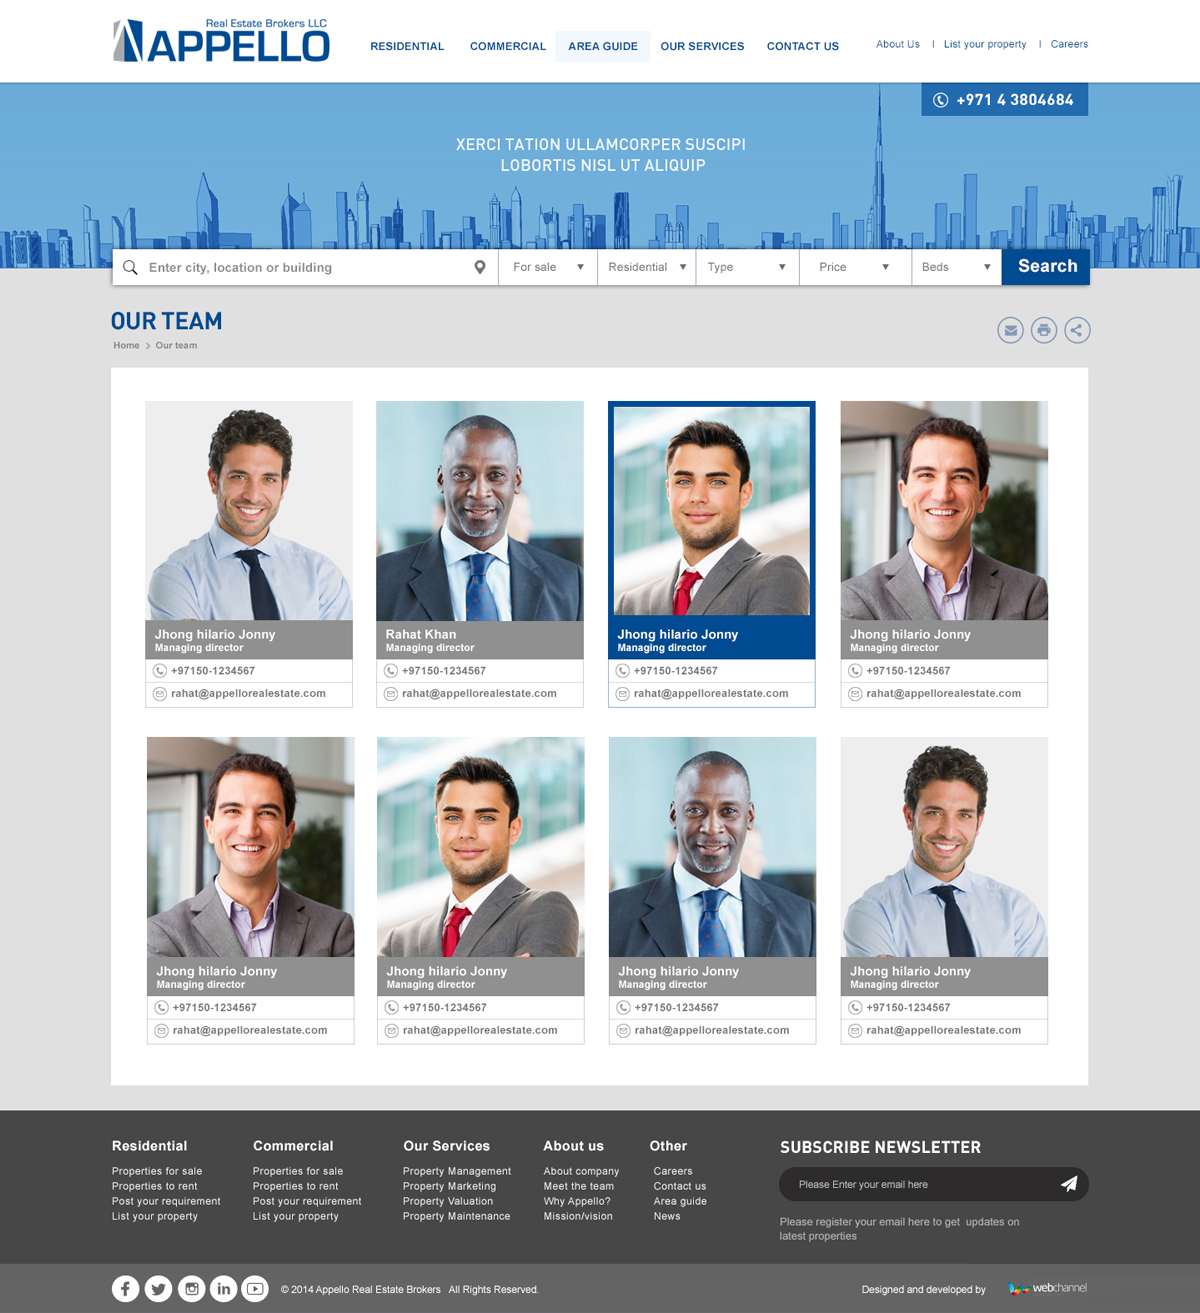 Appello Real Estate Website Design and Development by Web